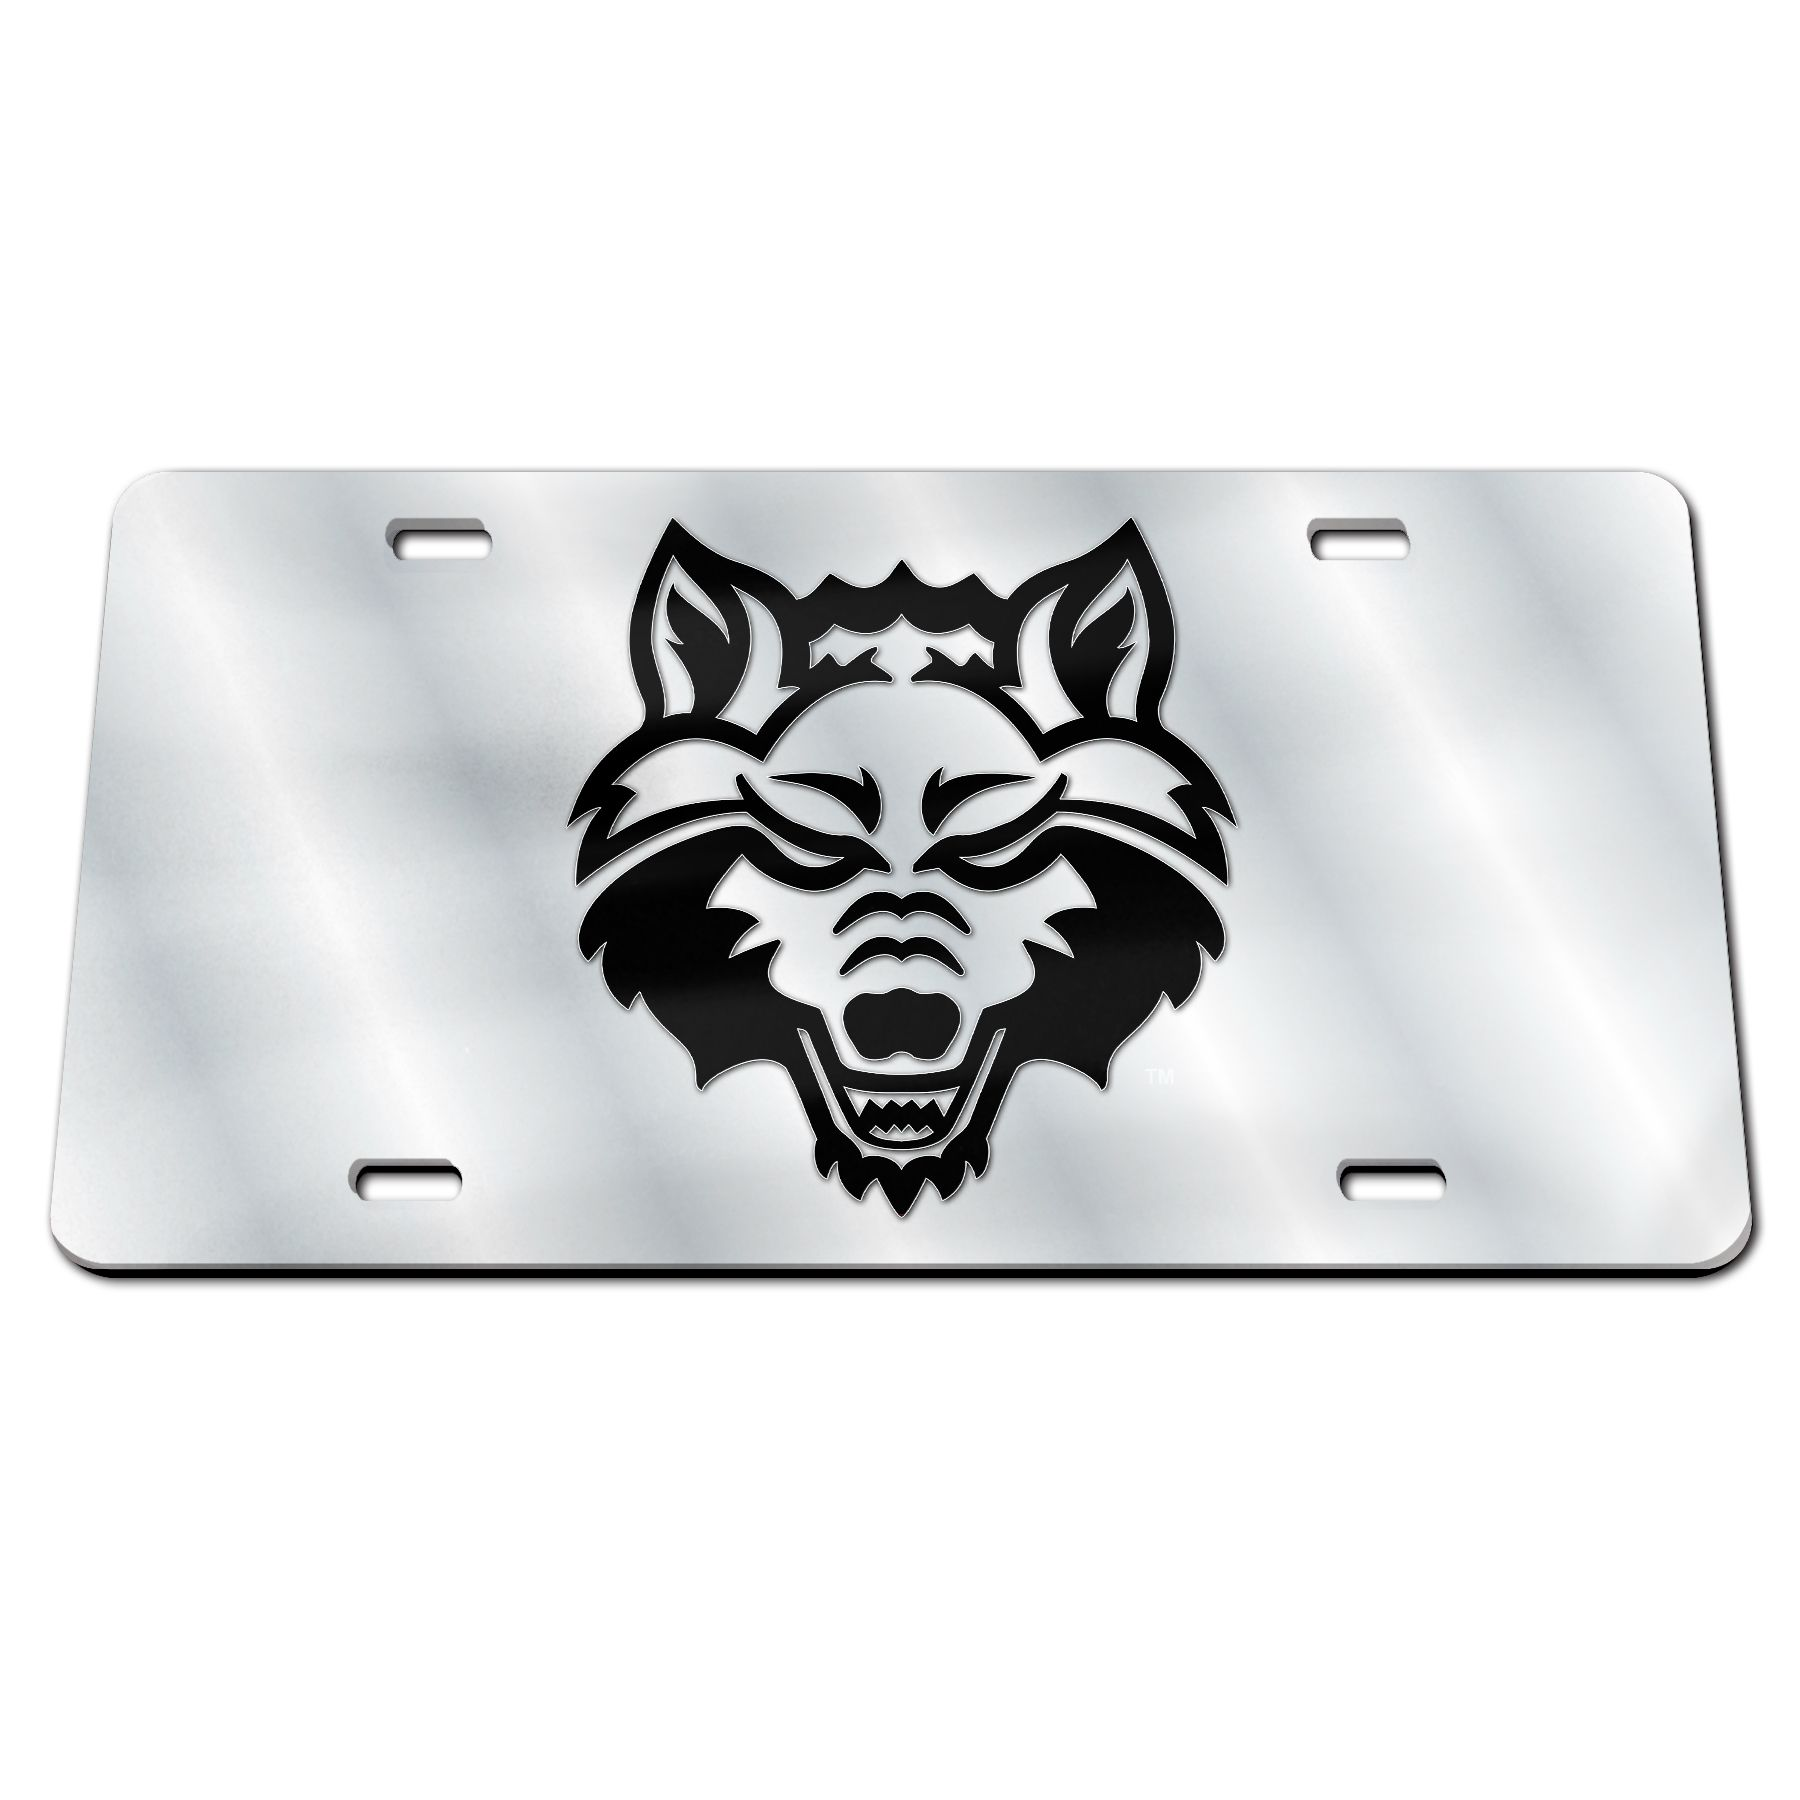 Red Wolves Mirrored Black & White Plate